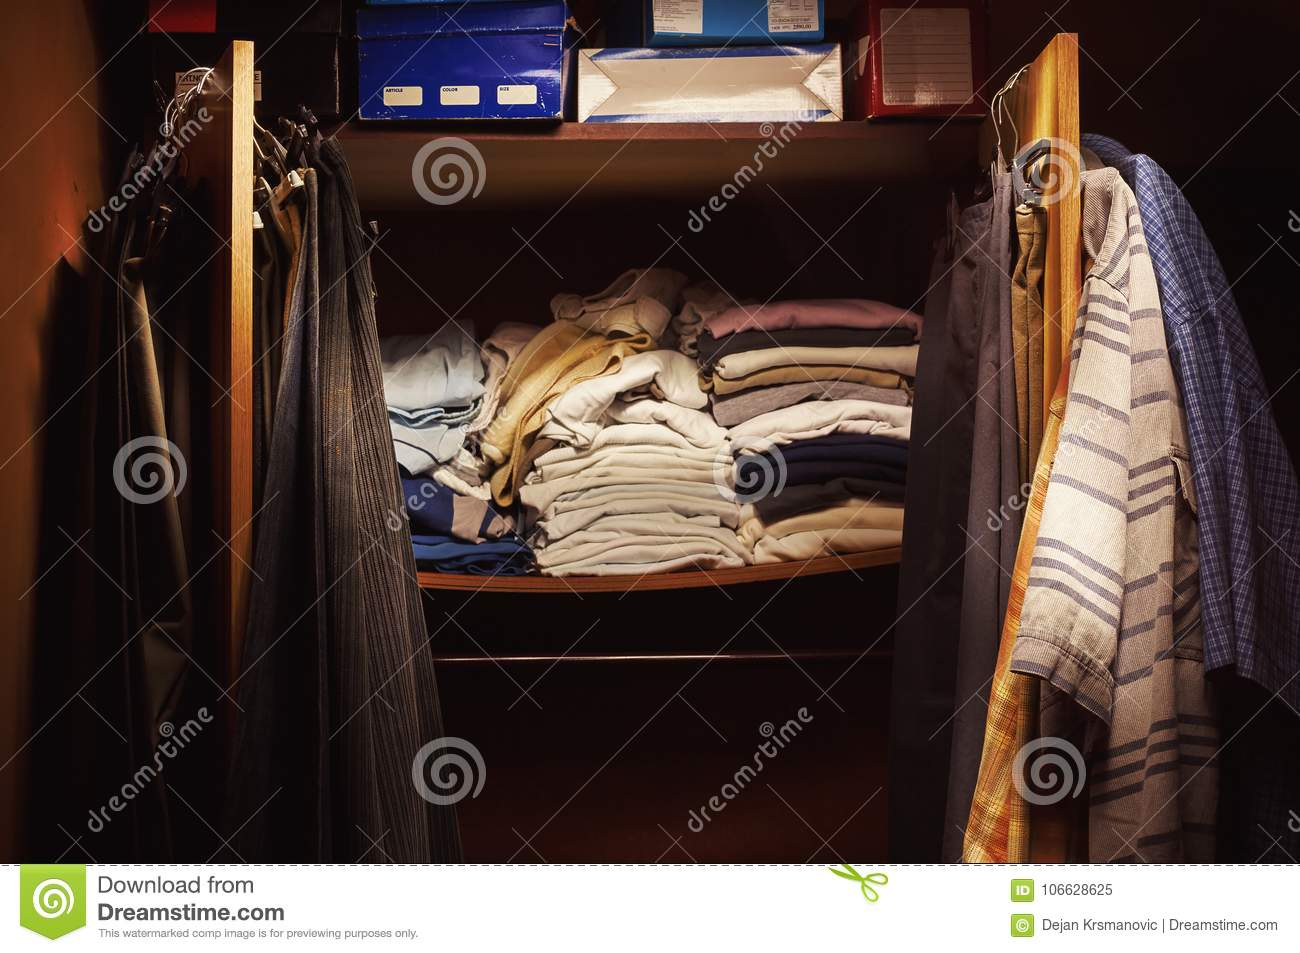 Old Clothes on Closet